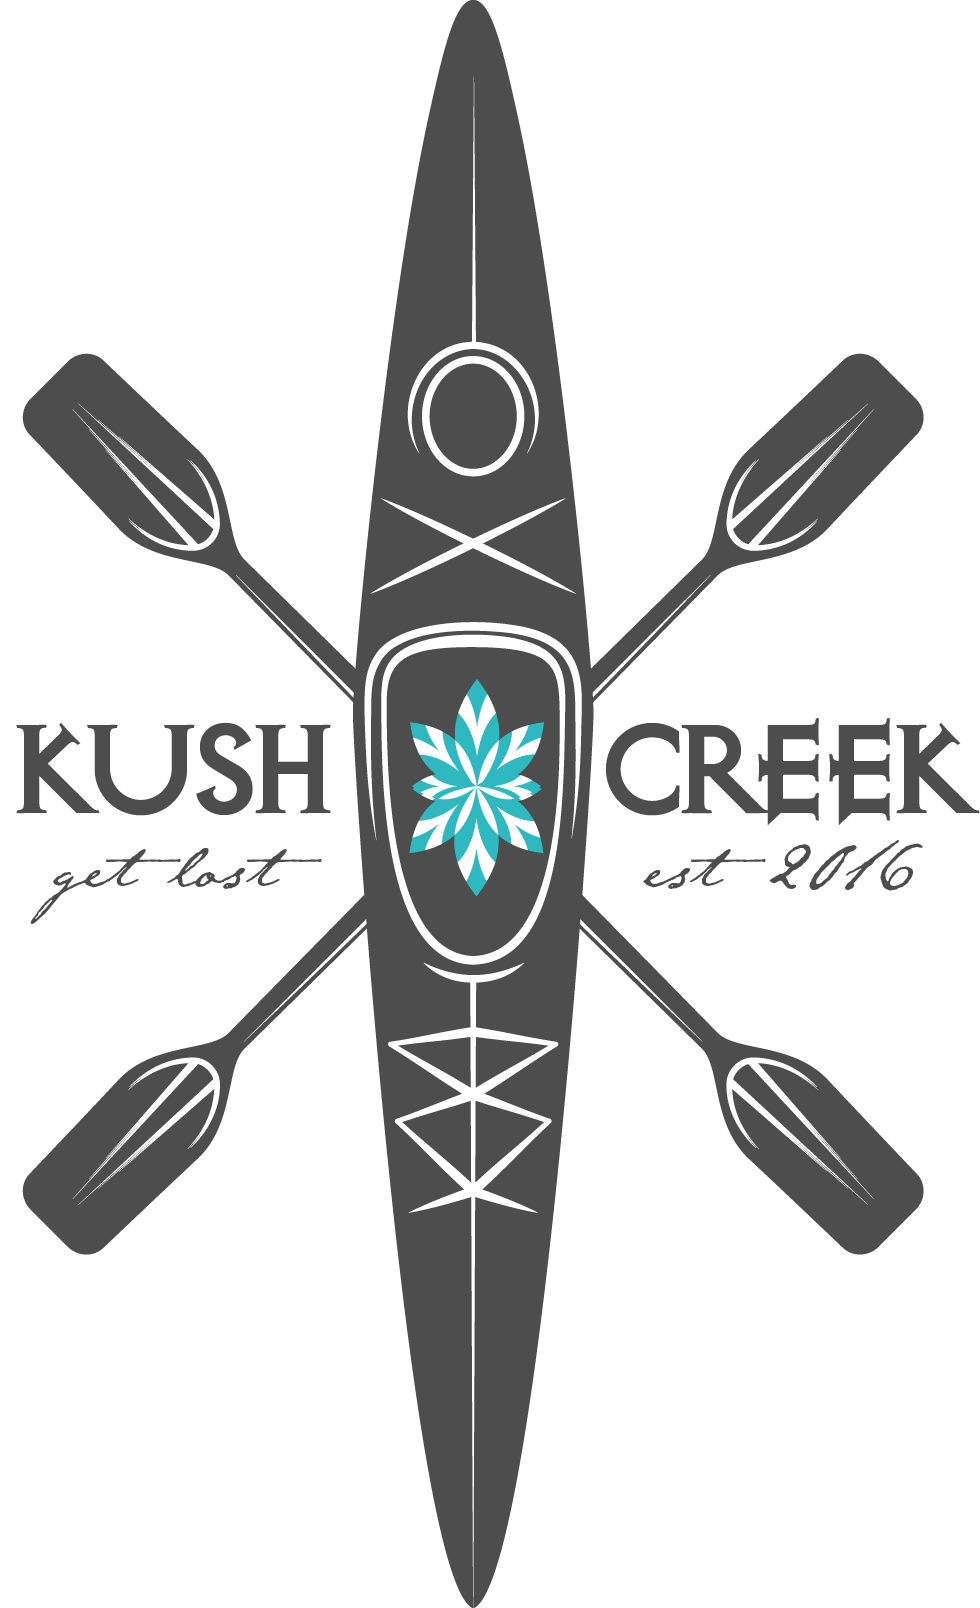 Kush Creek Logo dark.png